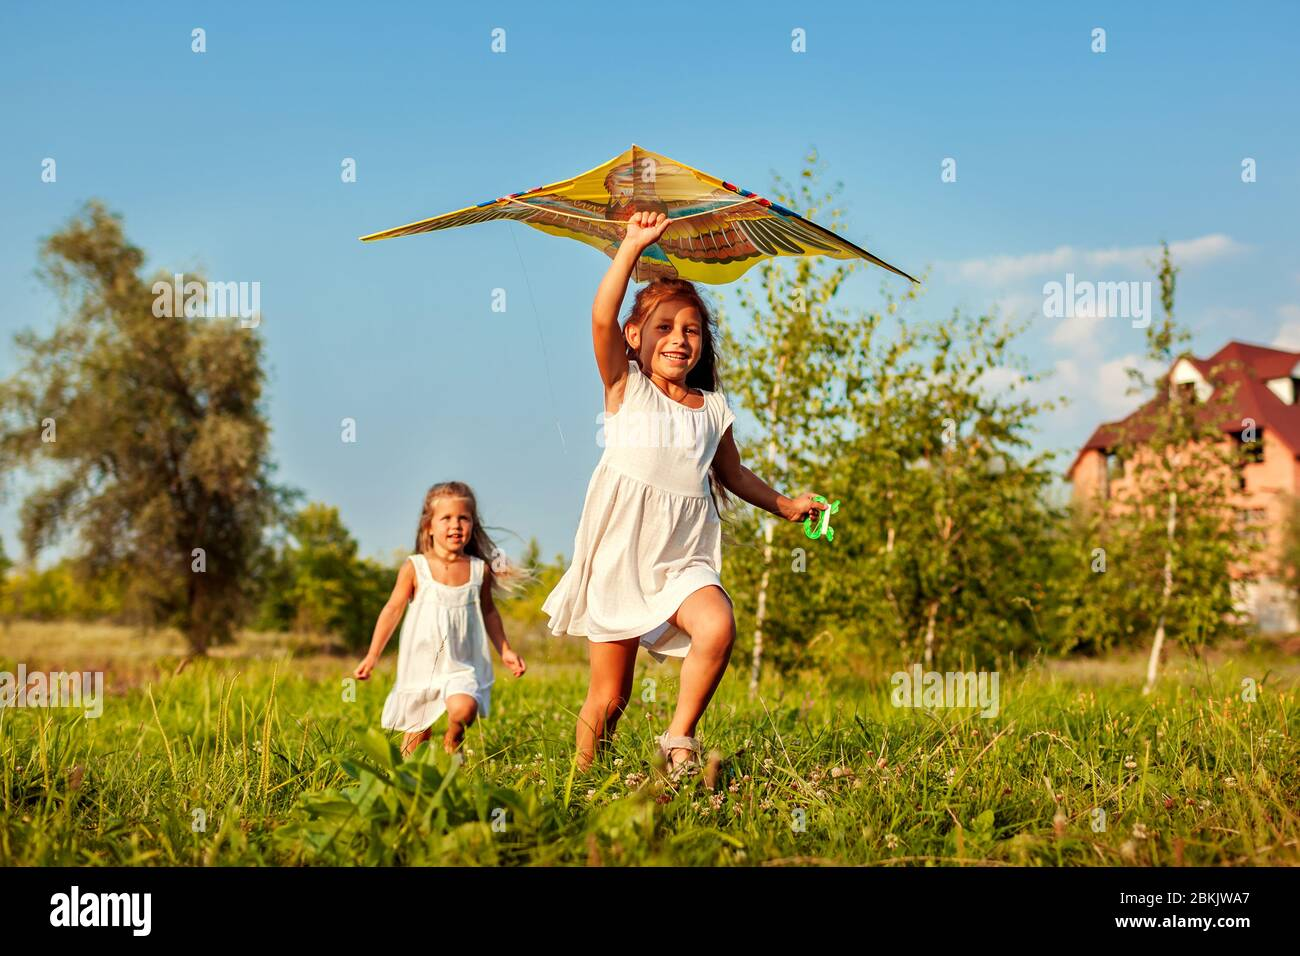 Happy little girls with kite running on meadow in spring park. Children having fun playing outdoors Stock Photo